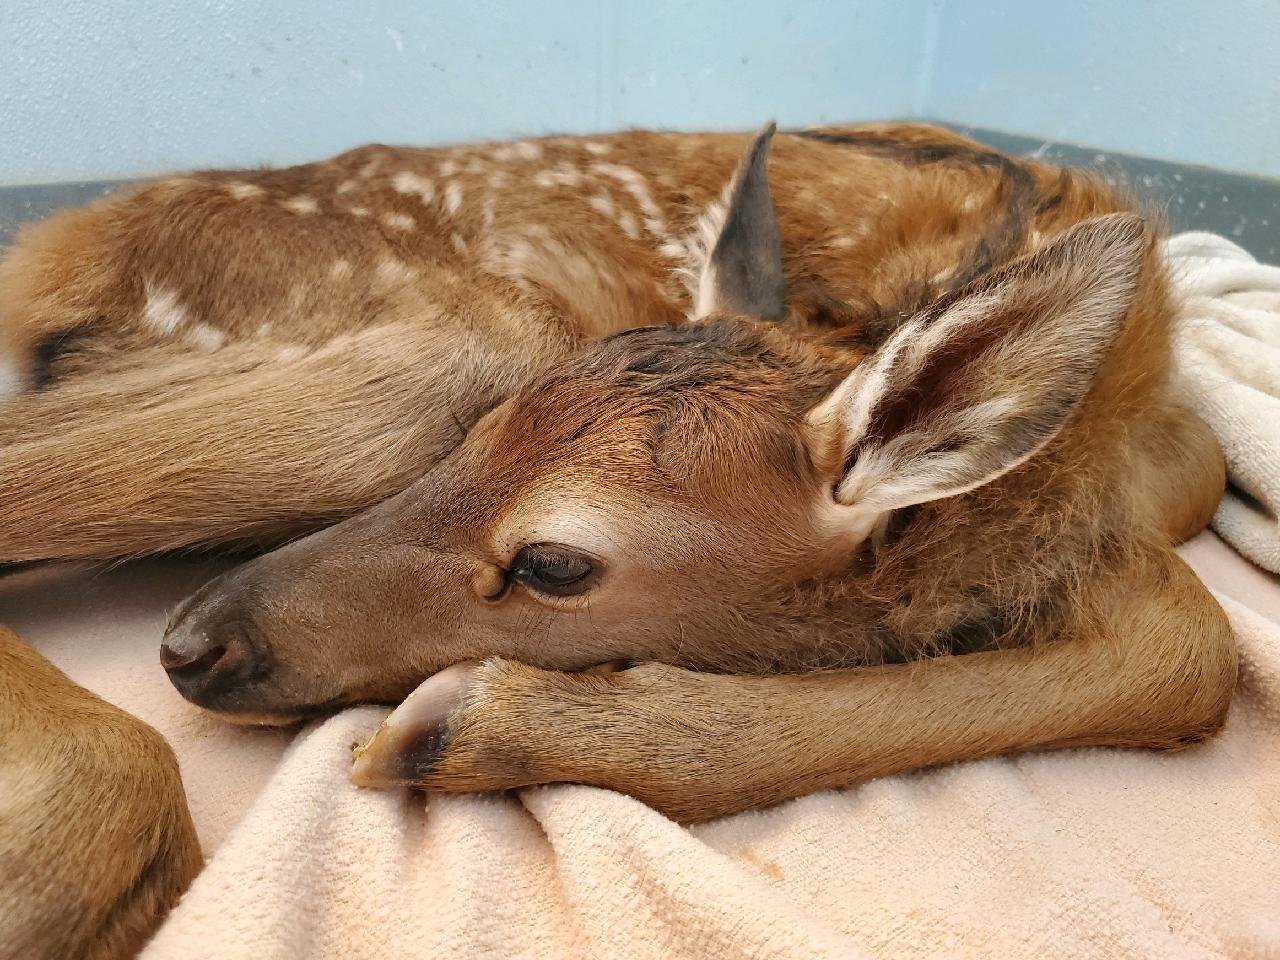 Photo of a baby elk